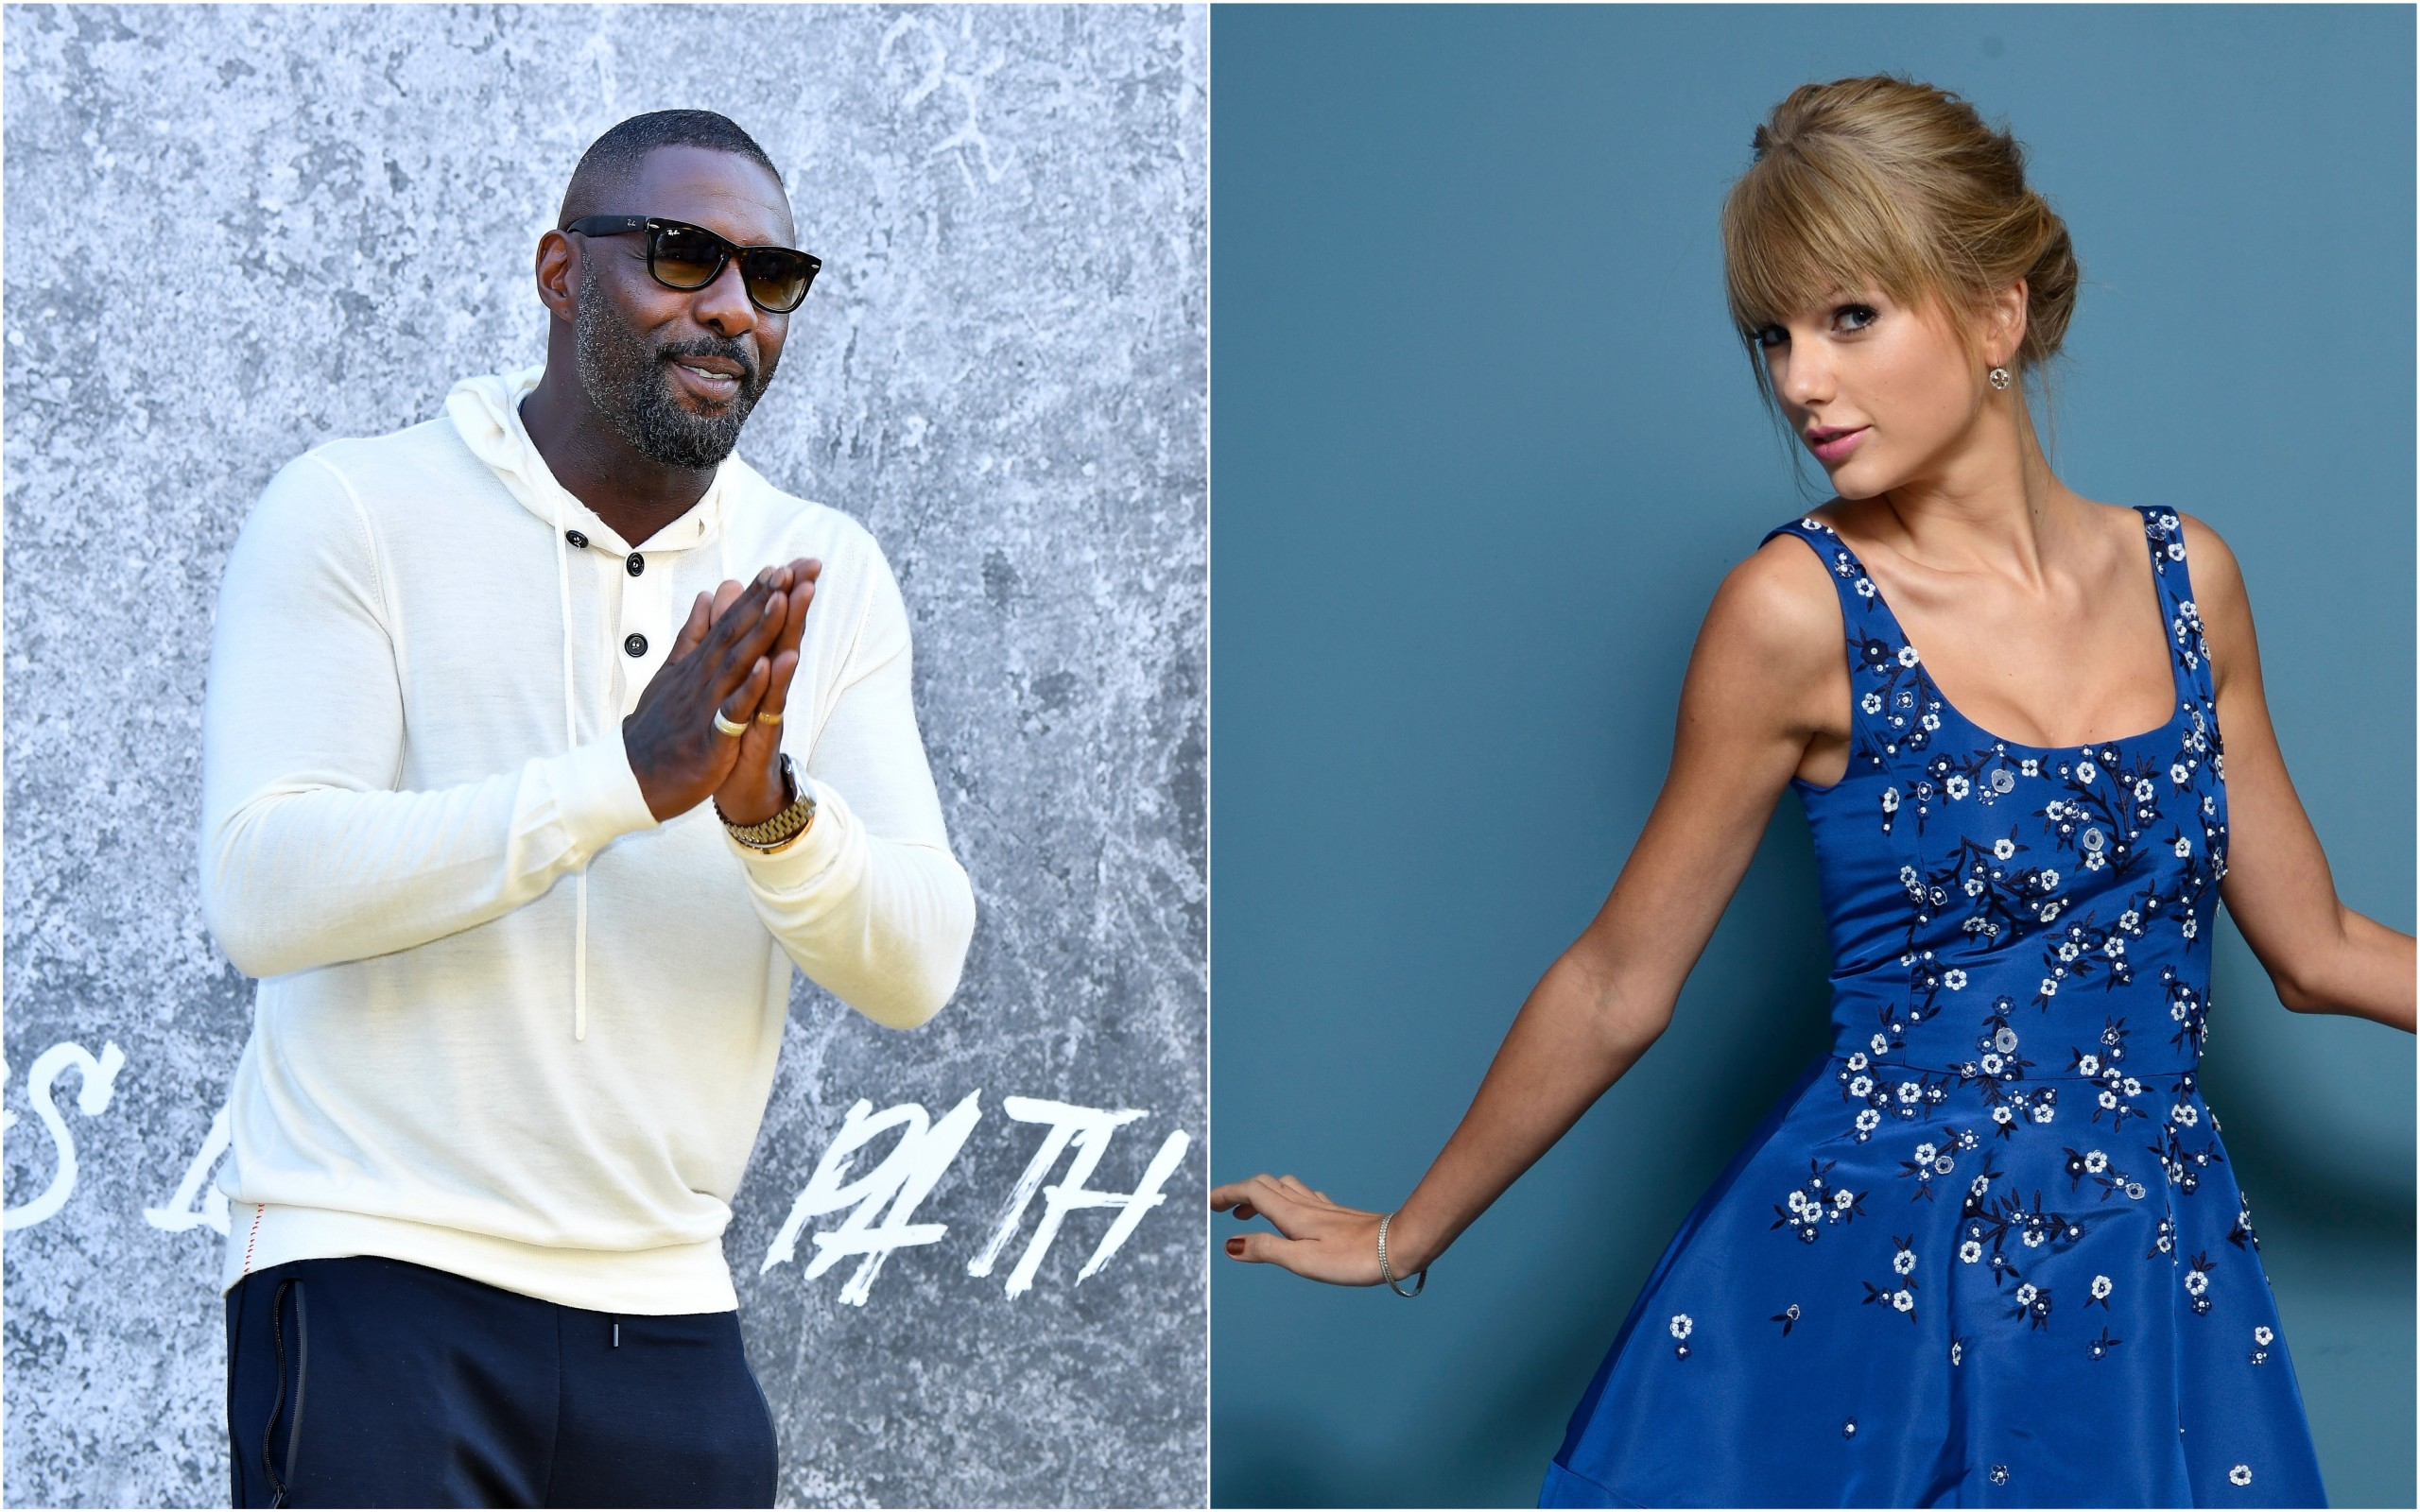 Idris Elba e Taylor Swift estarão presentes na adaptação de Cats para o cinema (Foto: Getty images)